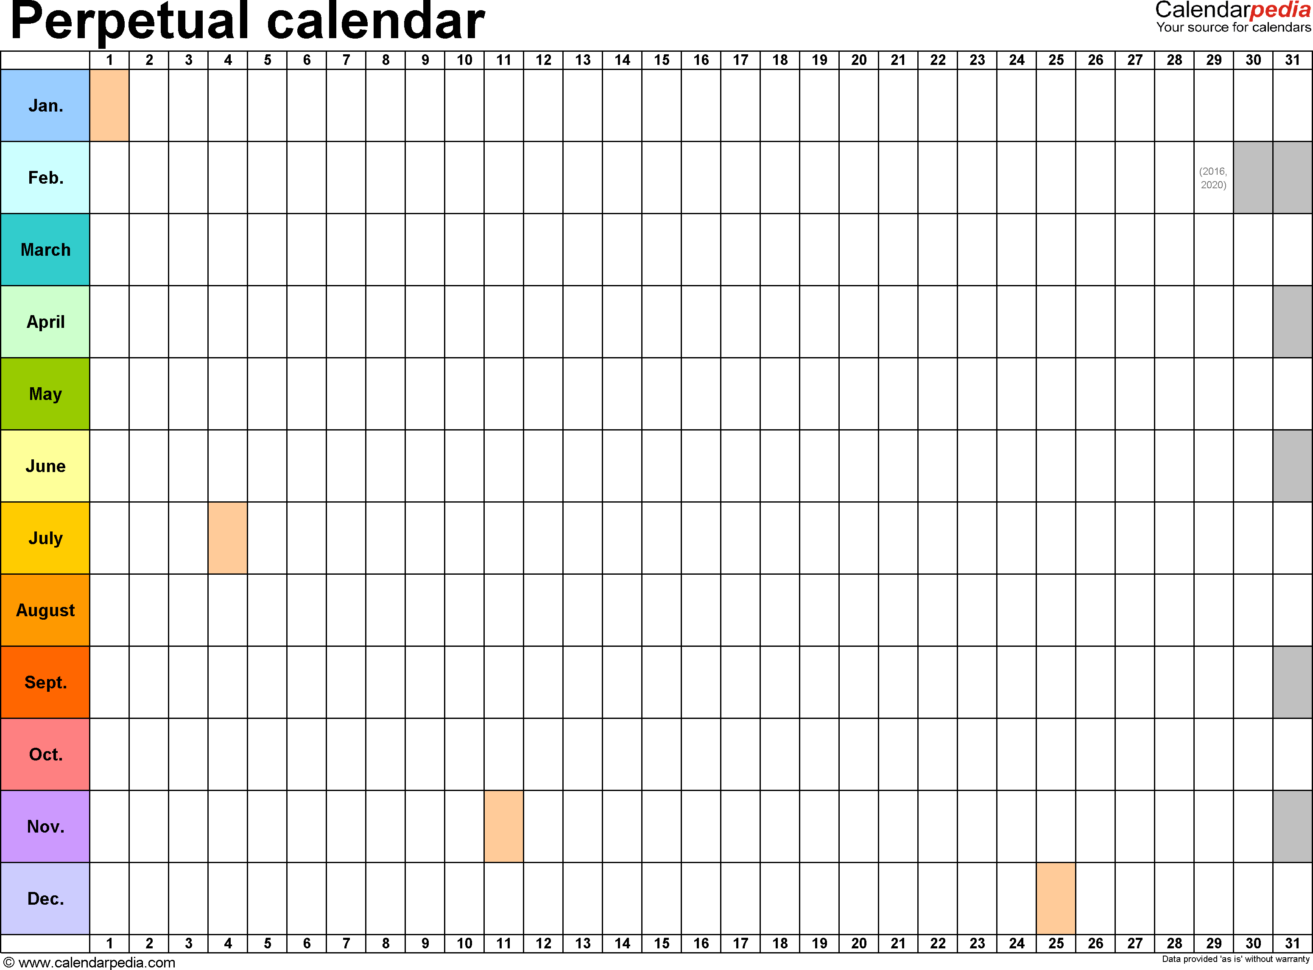 Calendar Spreadsheet Template Within Perpetual Calendars  7 Free Printable Excel Templates